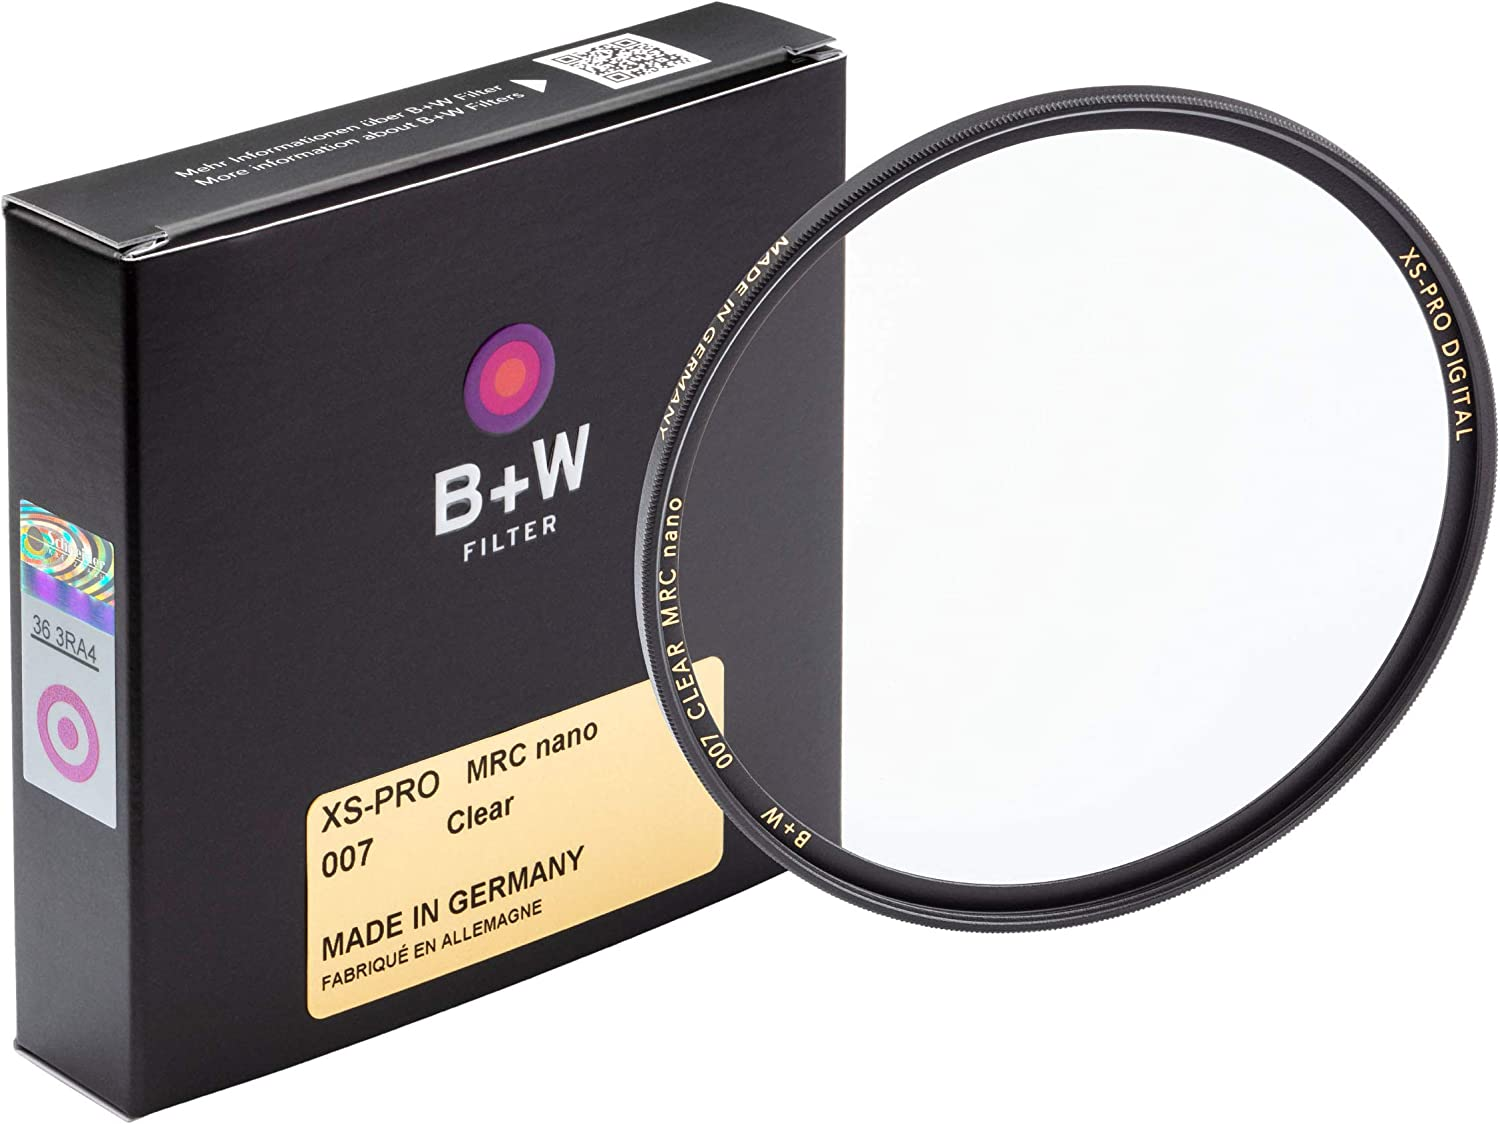 B+W 43MM XS-PRO Albuquerque Mall Clear with Multi-Resistant 007M Nano f Challenge the lowest price Coating